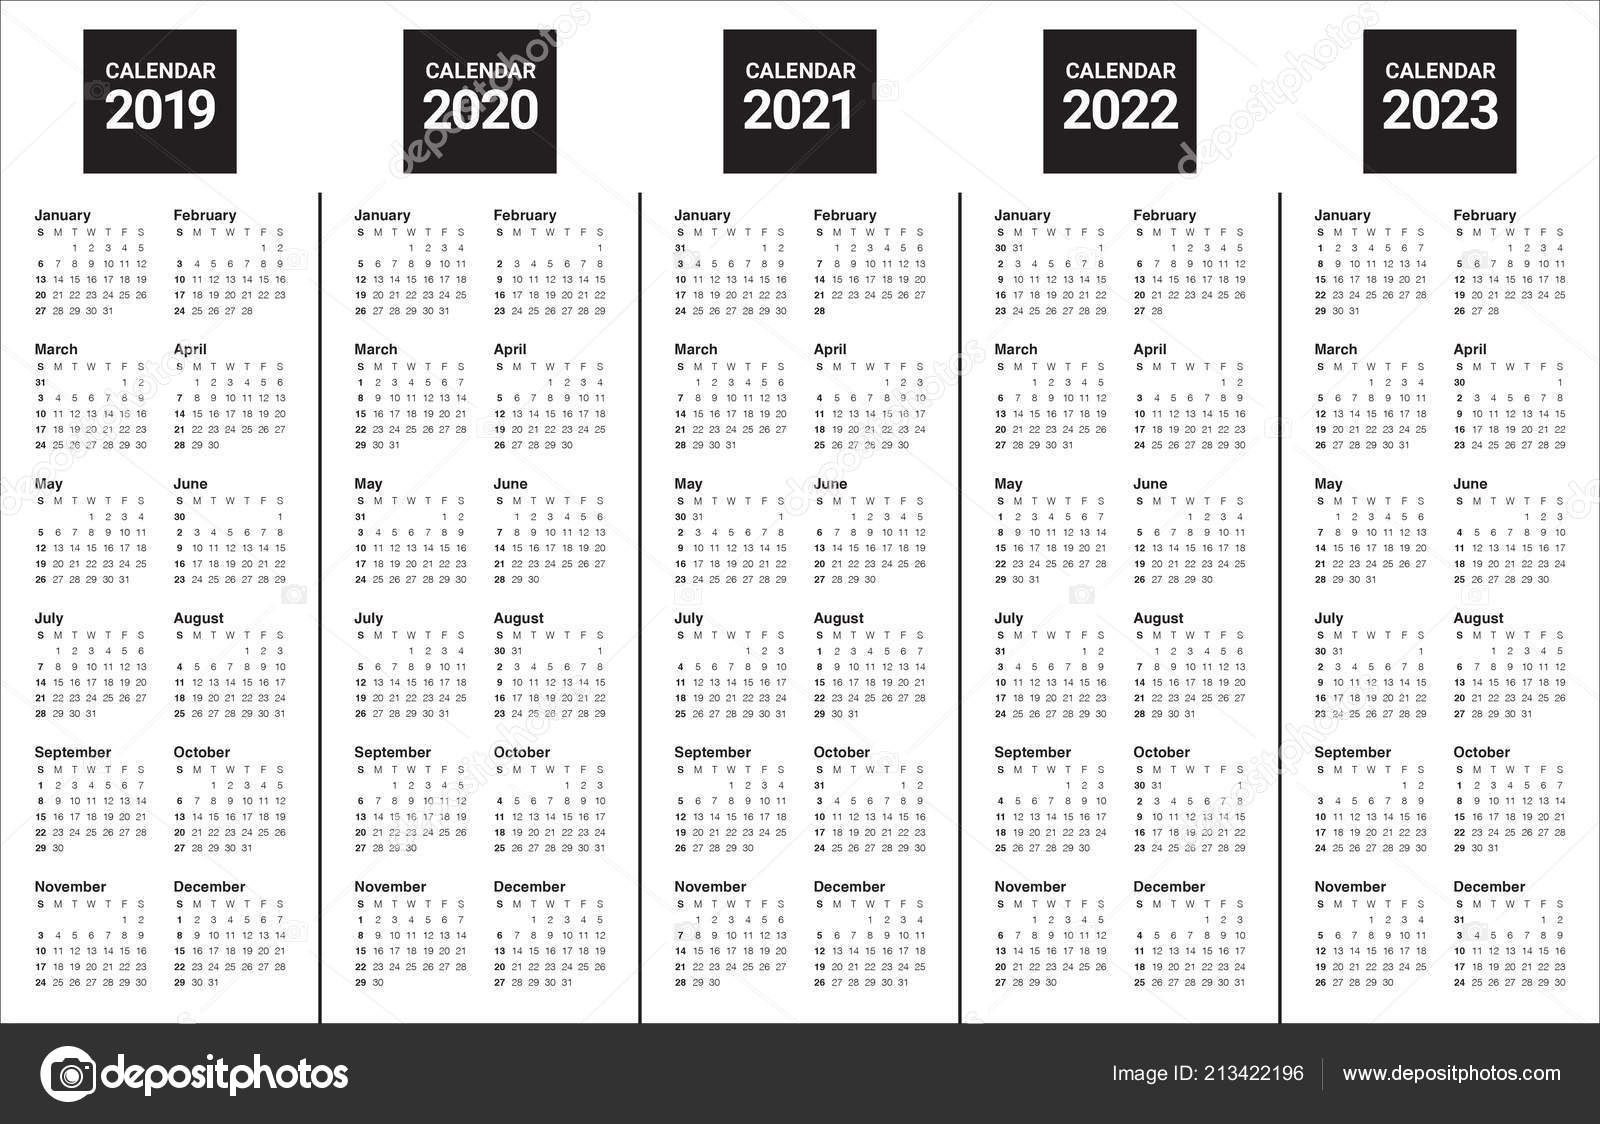 Printable Calendar For 2019/2020/2021/2022/2023 In 2020 pertaining to Yearly 2019 2020 2021 2022 2023